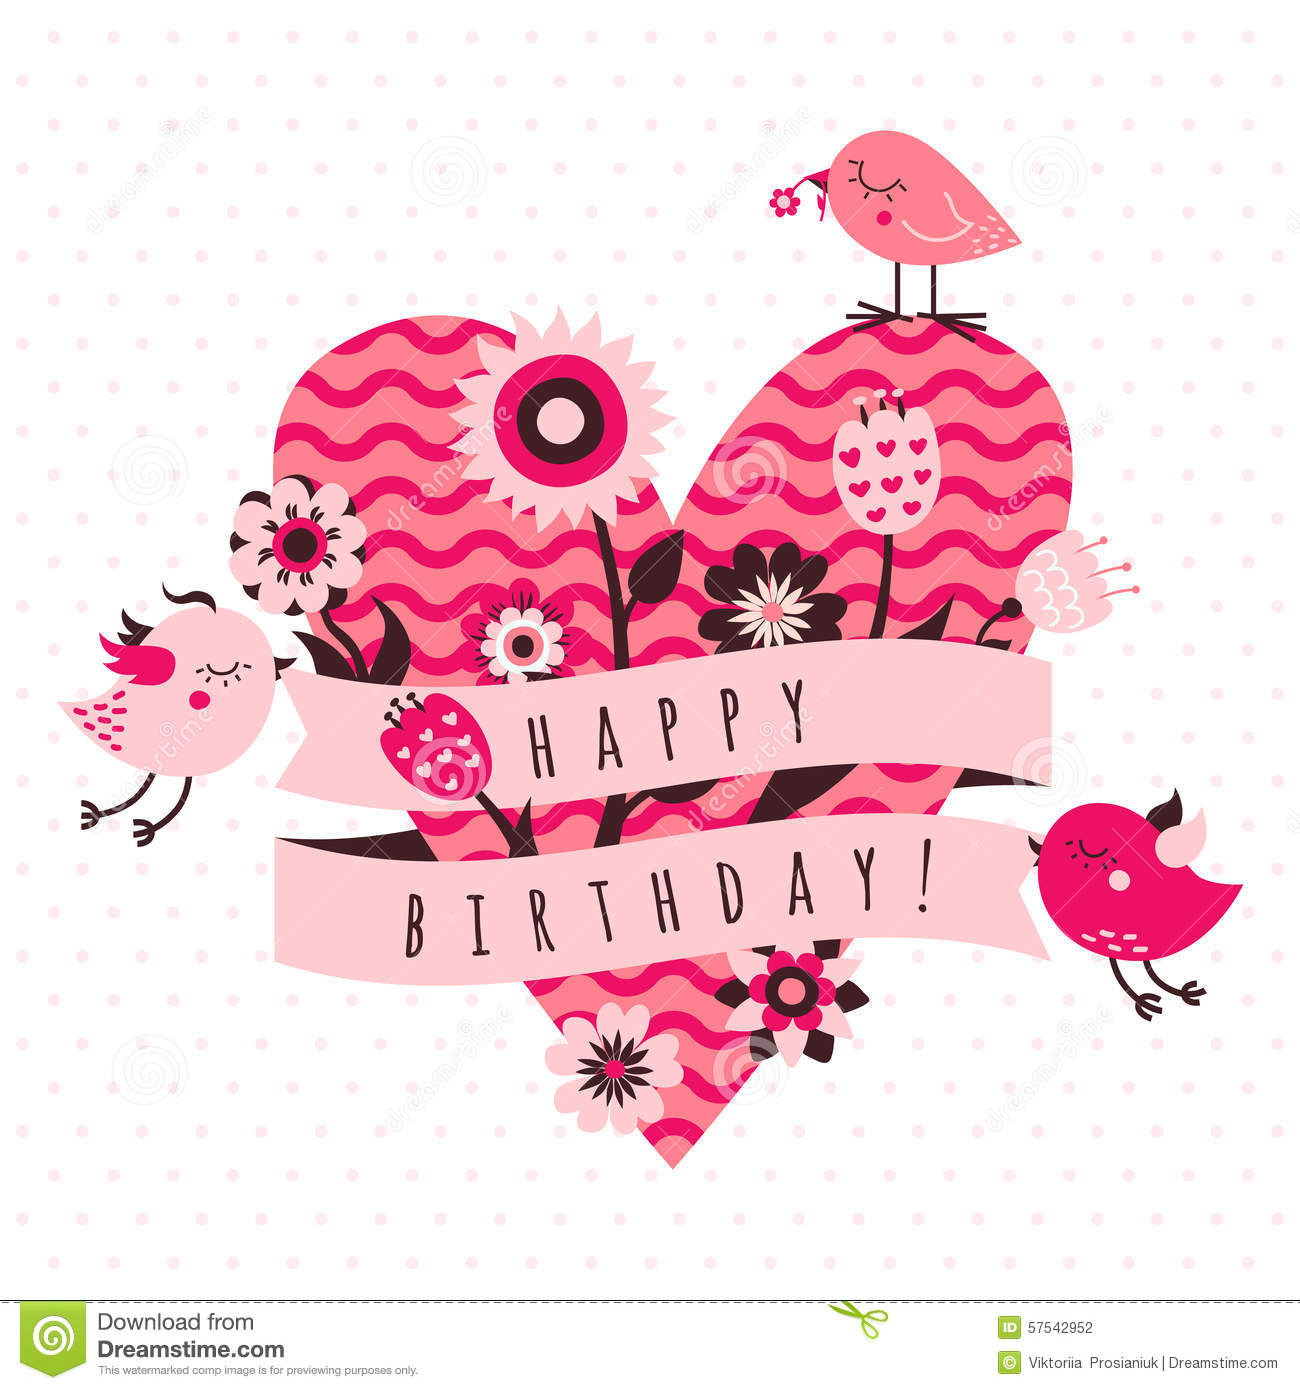 Happy Birthday Vector Card In Light And Dark Pink And Brown Colors.